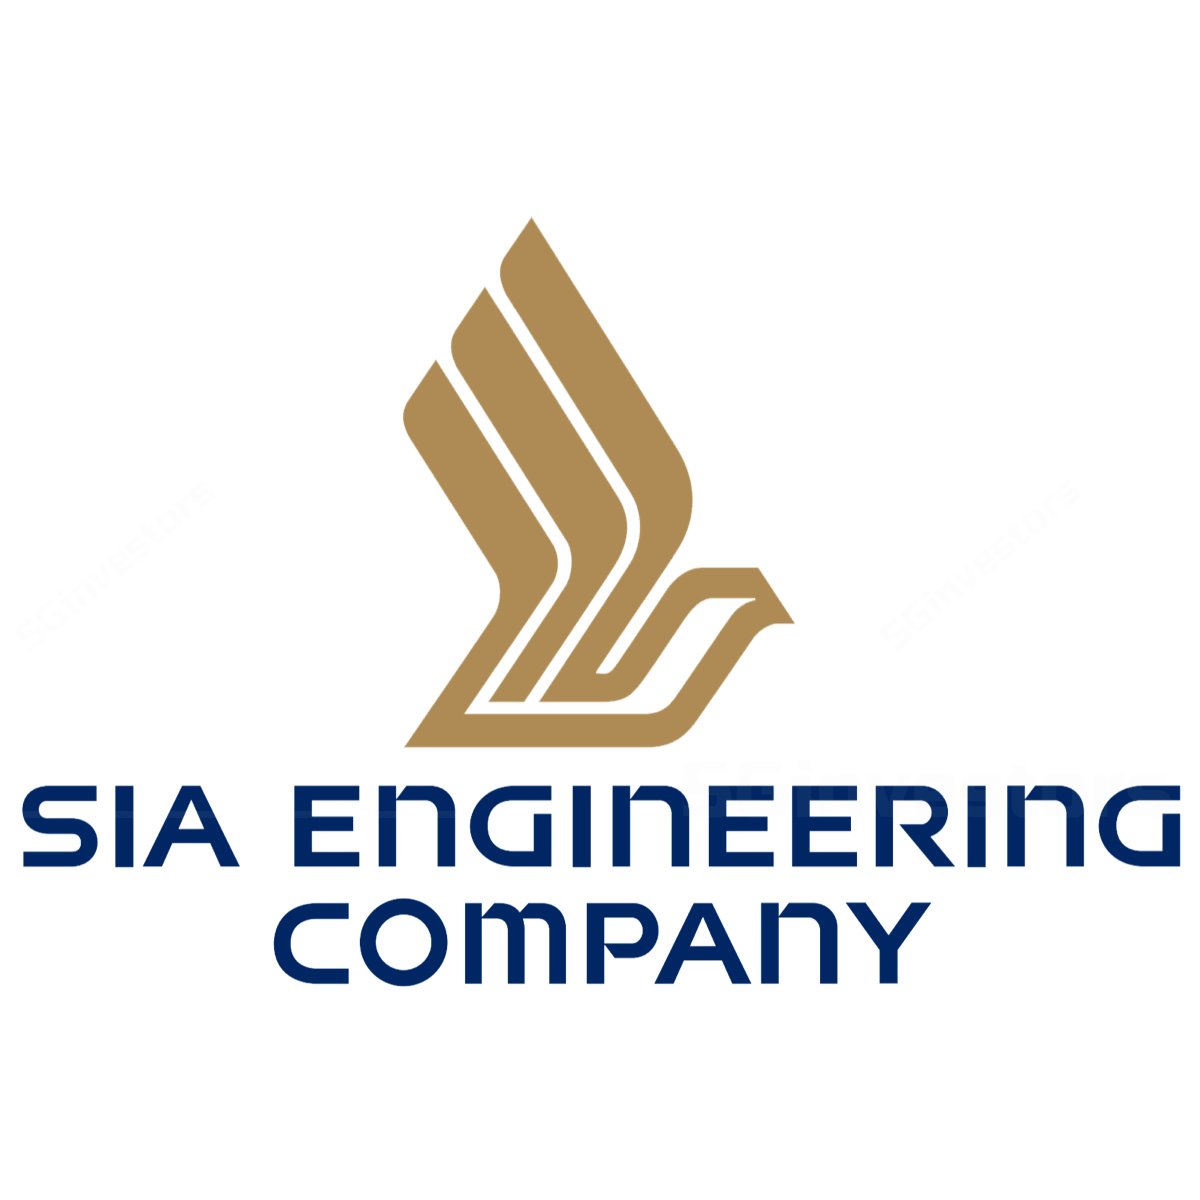 SIA Engineering (SIE SP) - UOB Kay Hian 2017-11-07: 2QFY18: Associate Earnings Come To The Rescue. Upgrade To HOLD